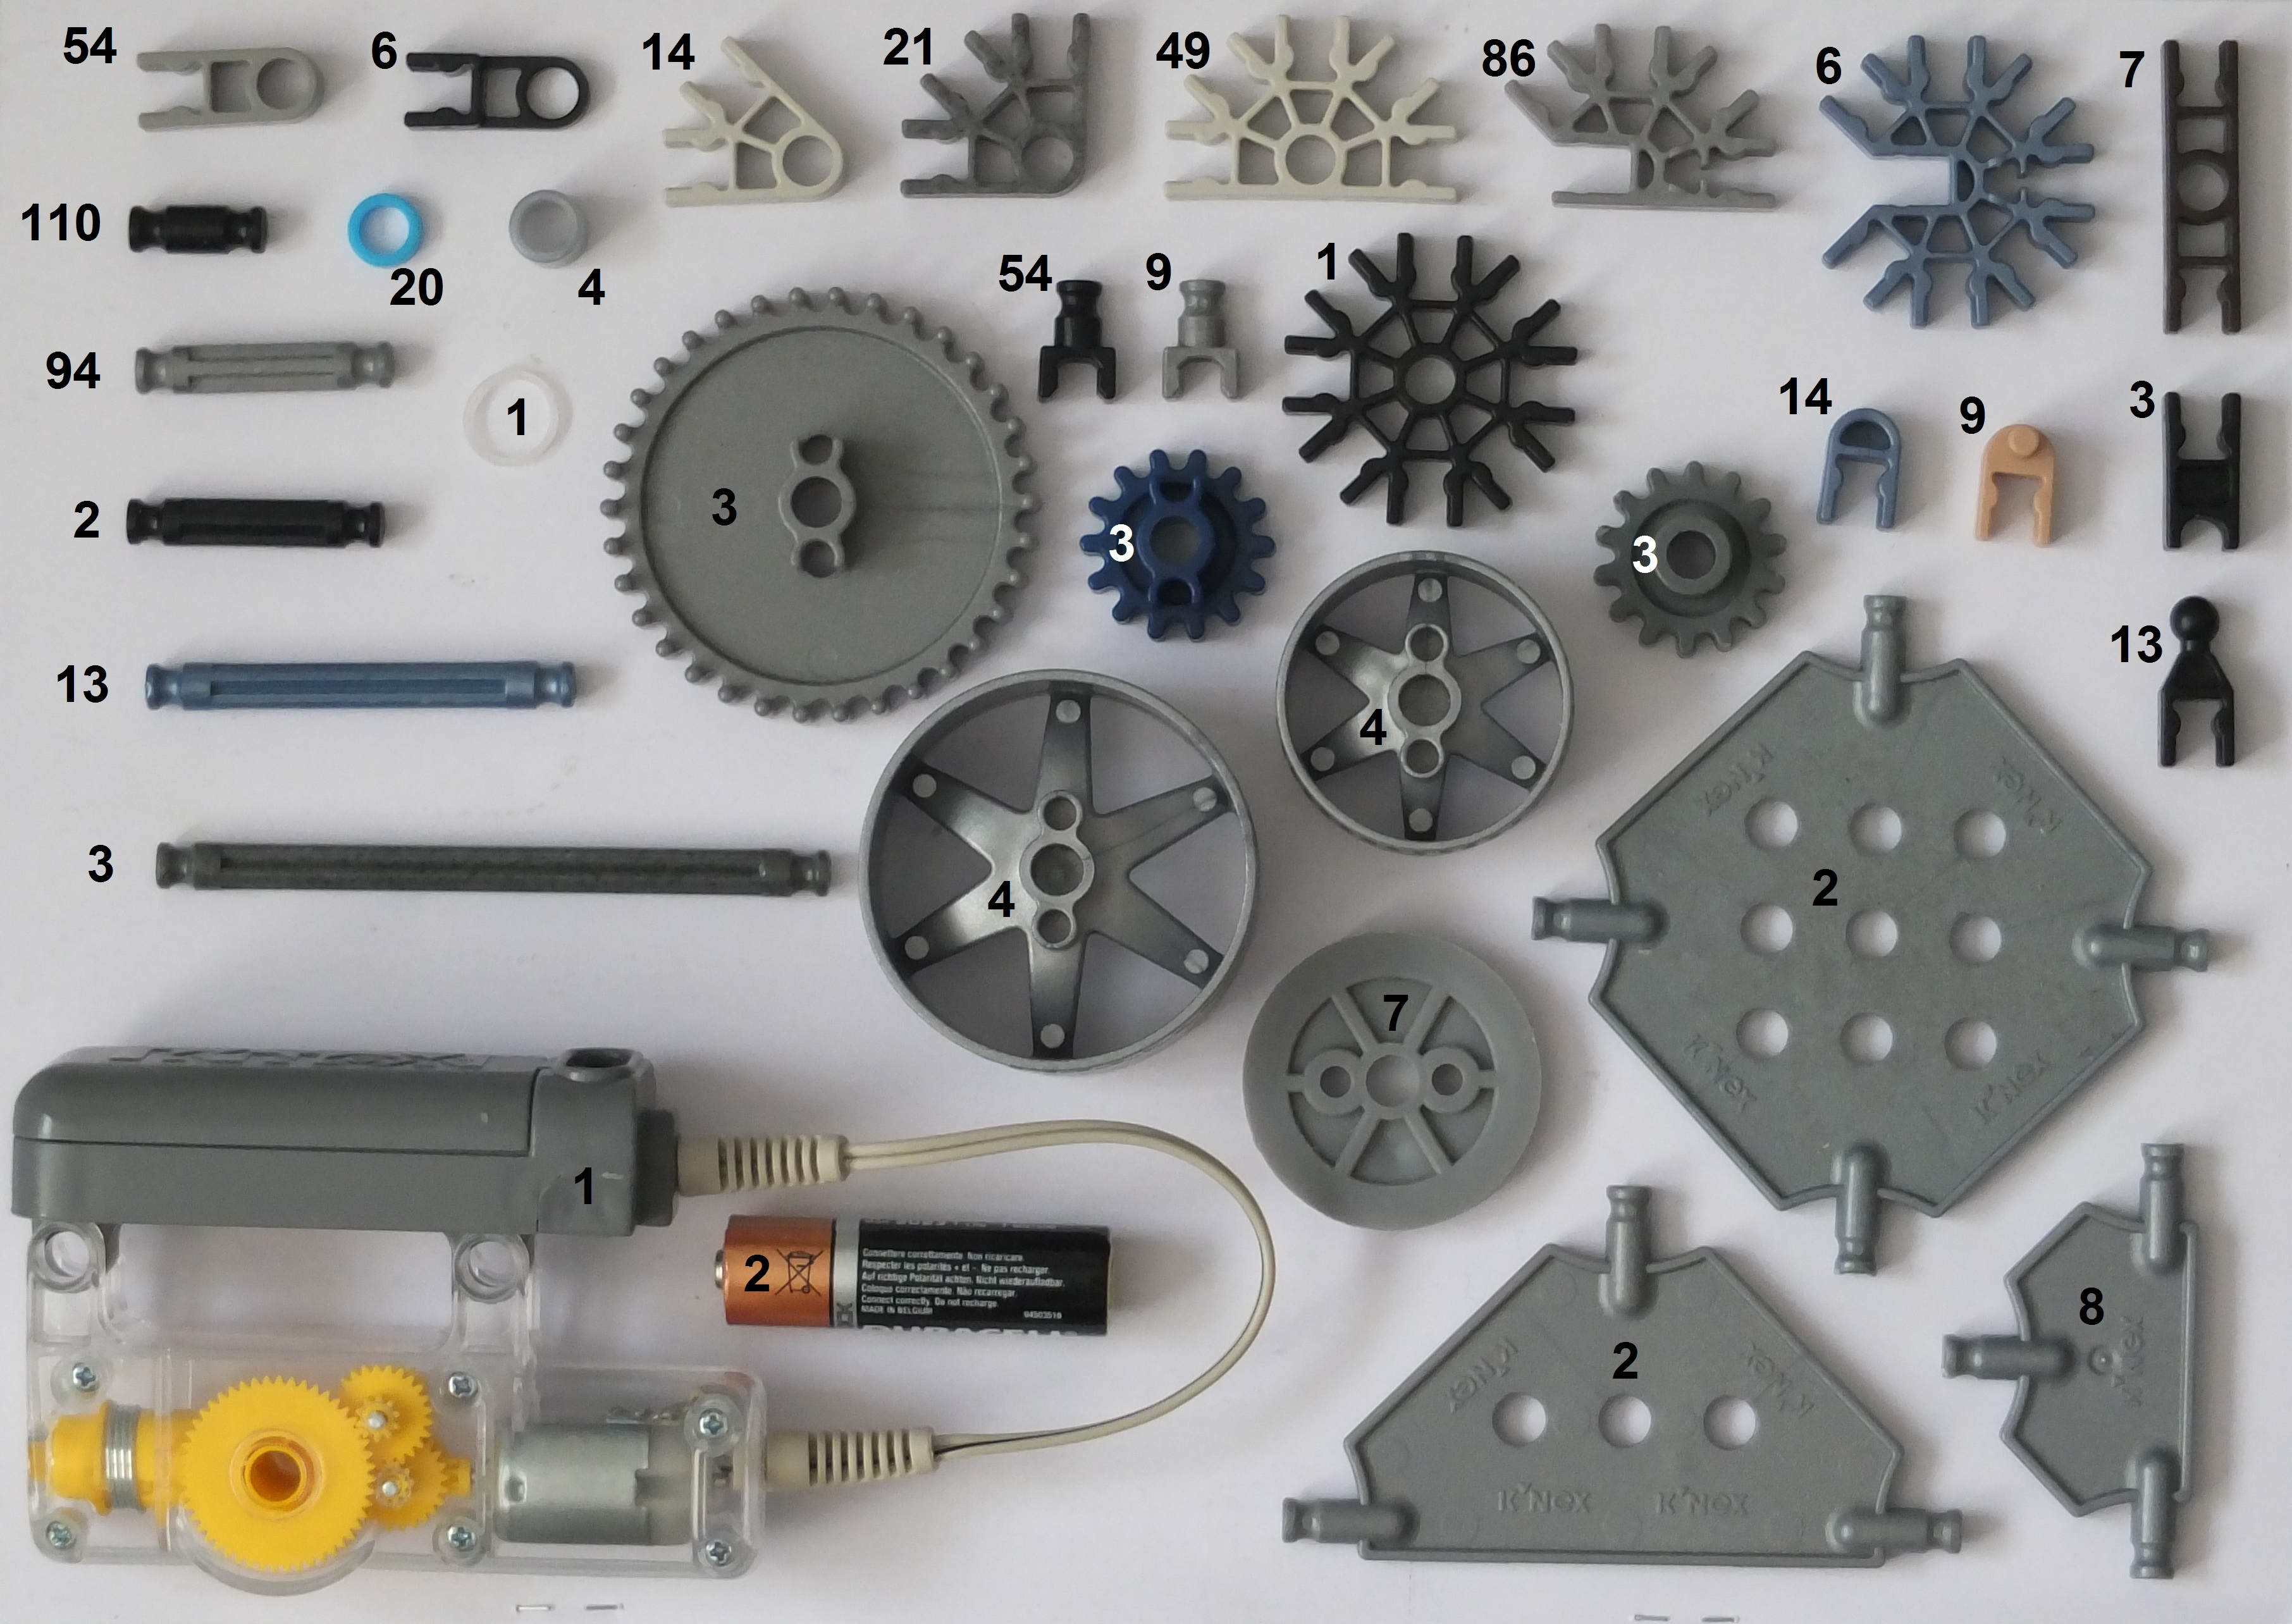 Picture of Parts Needed